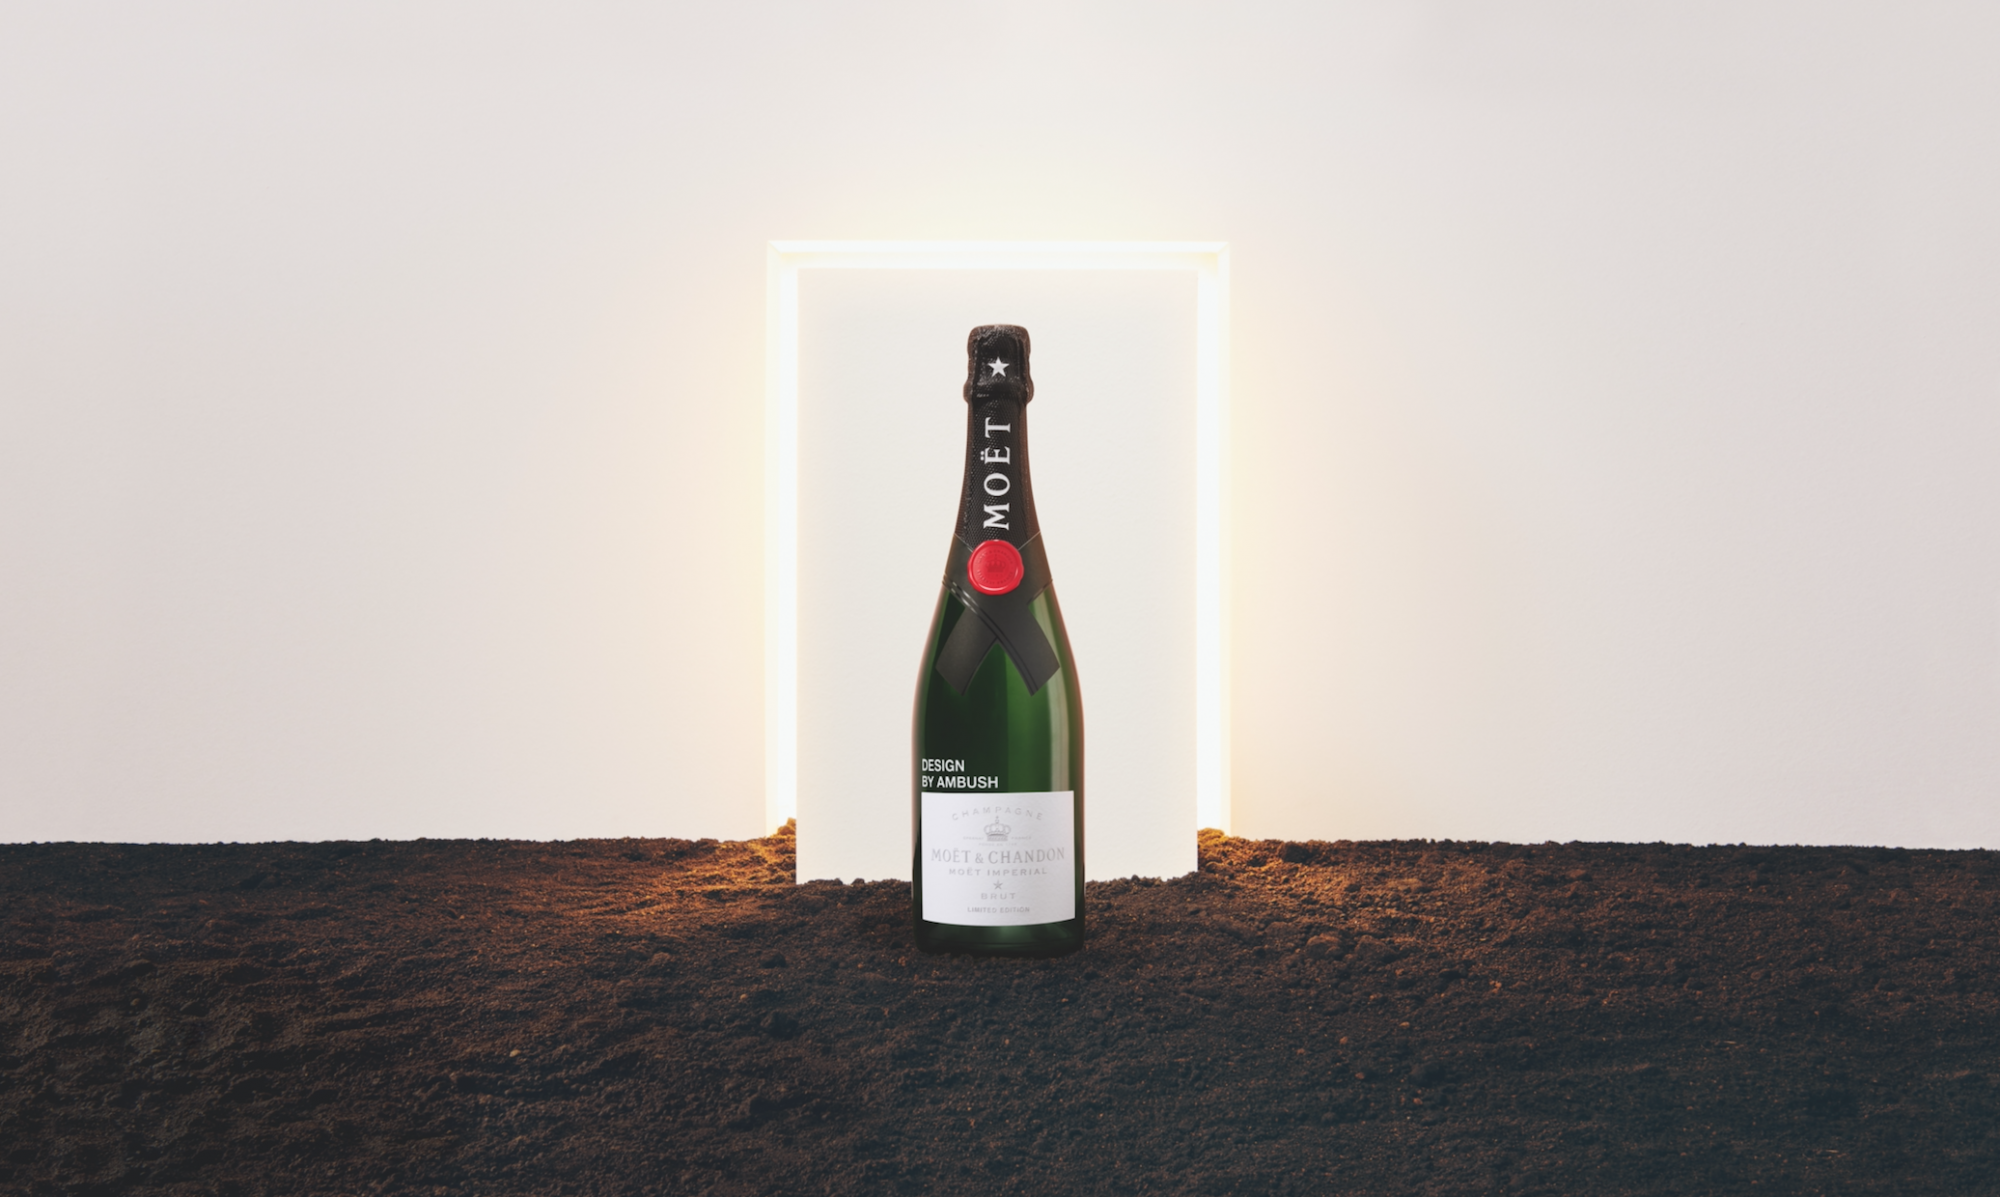 Moët & Chandon x Ambush: This Champagne Collaboration is One to Look Out For